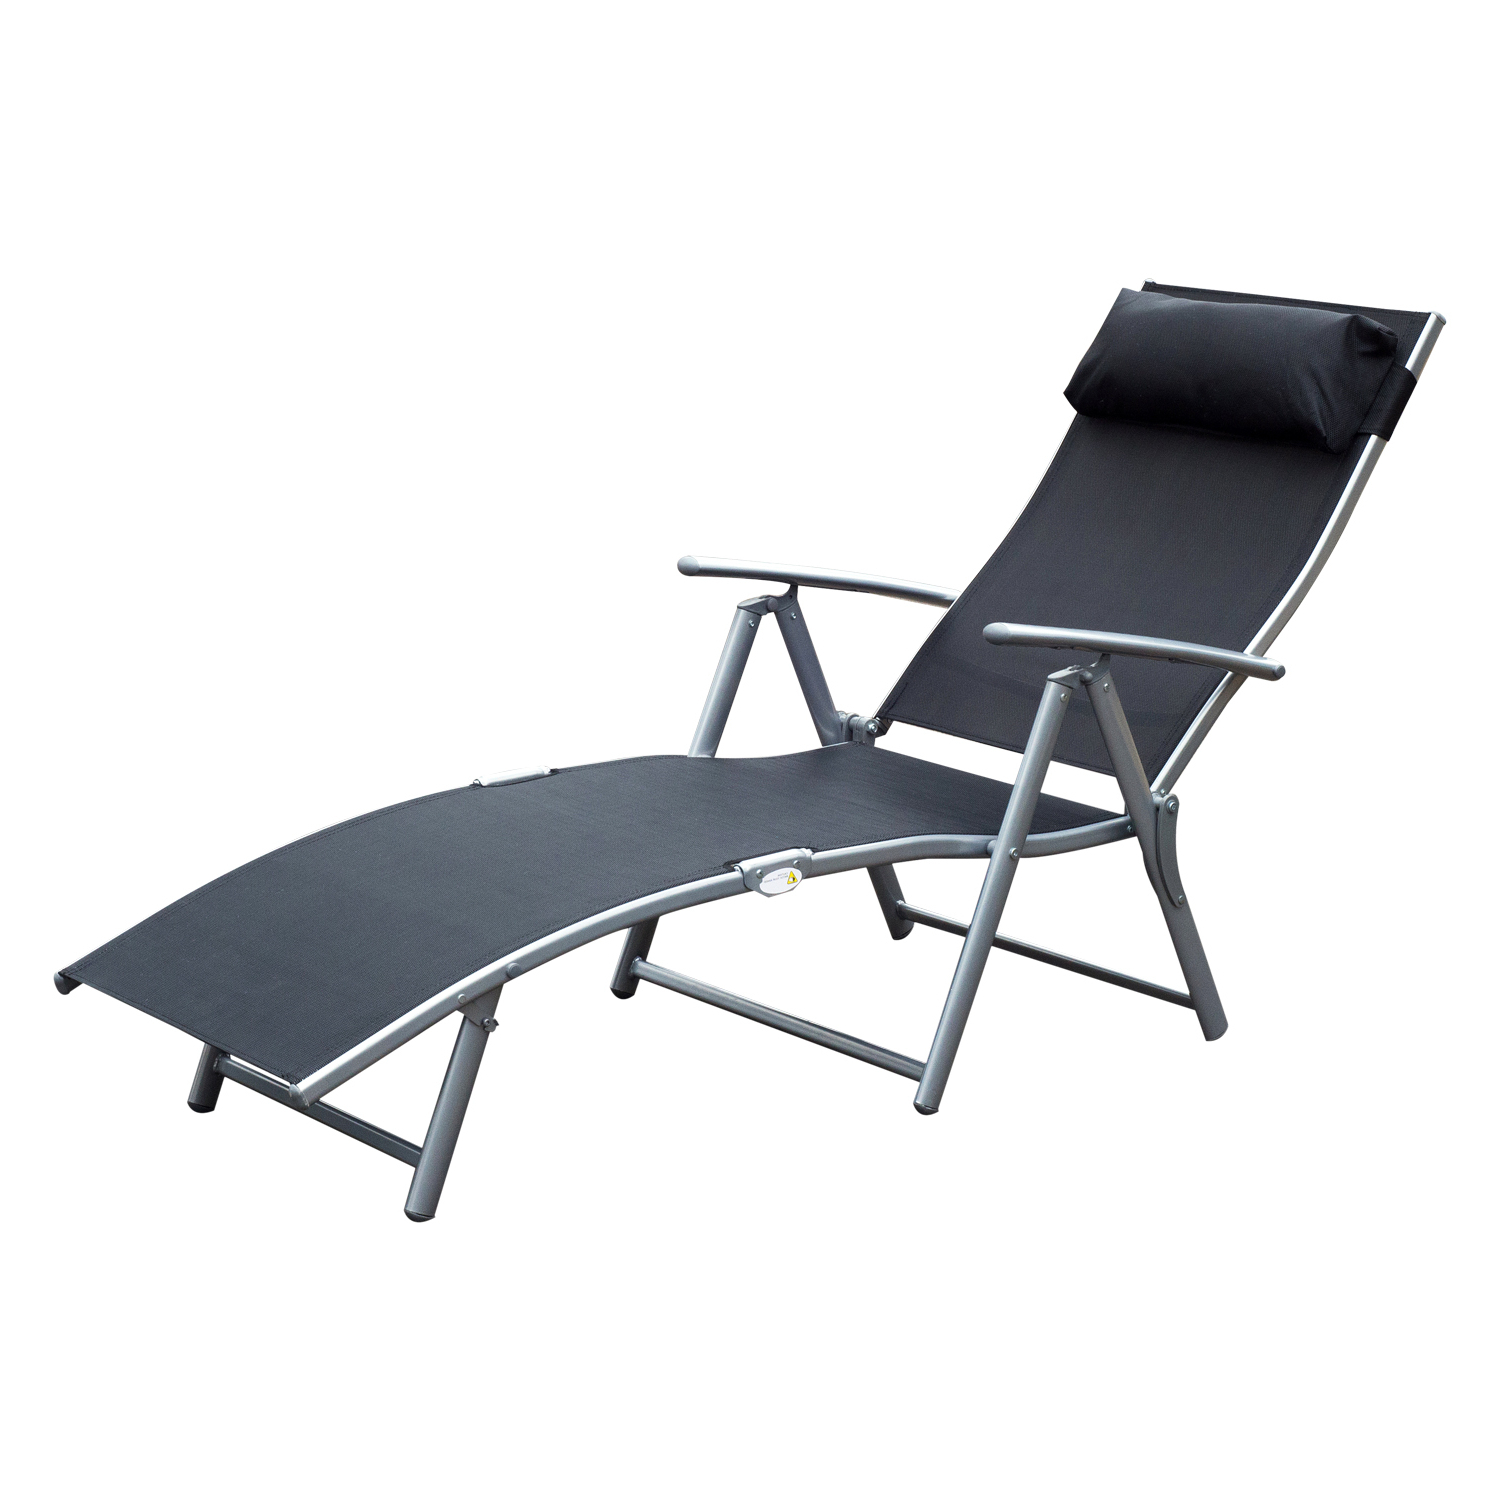 Most Recently Released Outsunny Sling Fabric Patio Reclining Chaise Lounge Chair Folding 5  Position Adjustable Outdoor Deck With Cushion – Black – Walmart Regarding Black Sling Fabric Adjustable Chaise Lounges (View 22 of 25)